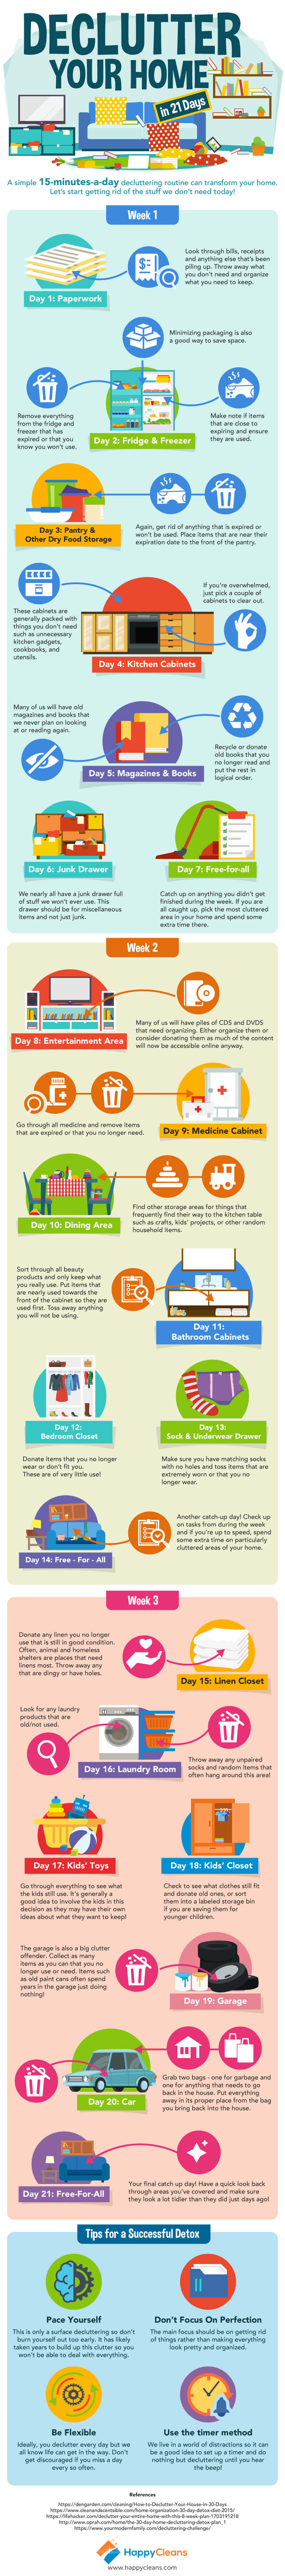 Clutter can ruin the appearance of a home.  If it is left for too long, it can get completely out of hand. This infographic from HappyCleans looks at how you can reduce the amount of clutter in your home in just 21 days.  If you follow the infographic to declutter your home, you will be satisfied with the results. #cleanhome #cleanhometips #howtocleanmyhome #declutter #declutterideas #declutterandorganize #decluttering #housecleaning #maid #cleanhouse #cleaning